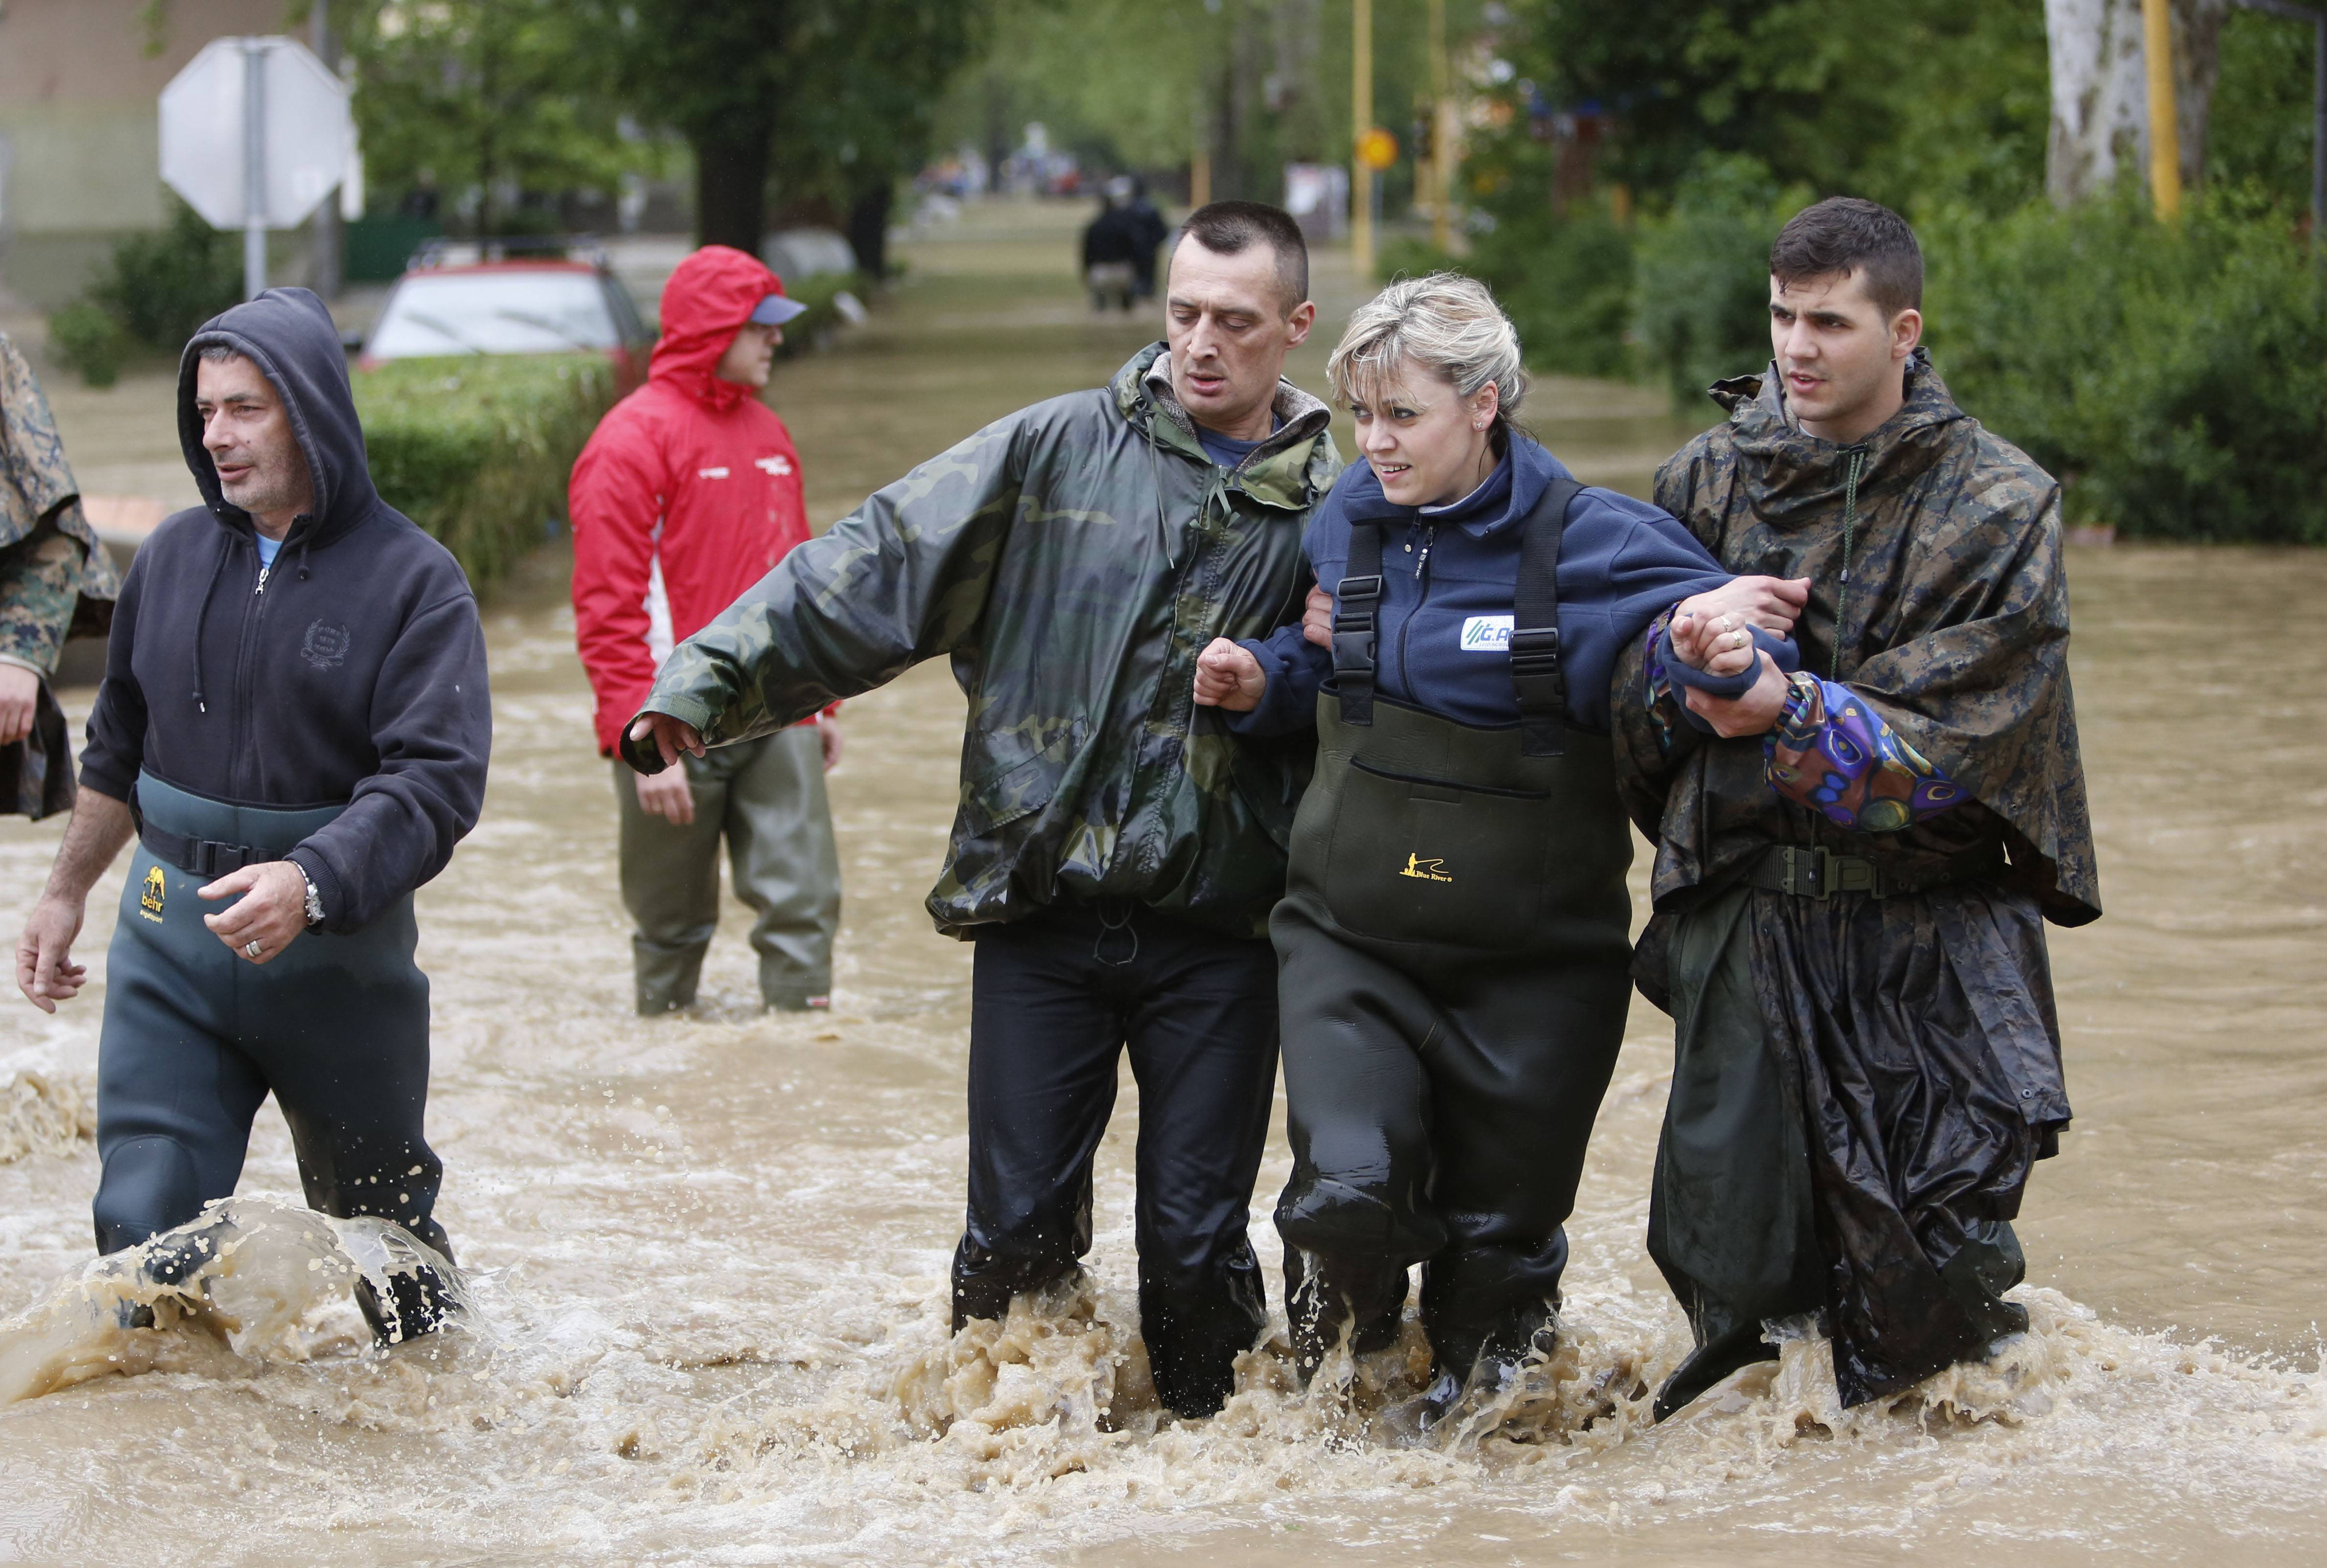 Members of the Bosnian army rescue a woman stranded in her home due to flooding,  in the Bosnian town of Maglaj, 150 kms north of Sarajevo, Friday May 16, 2014.